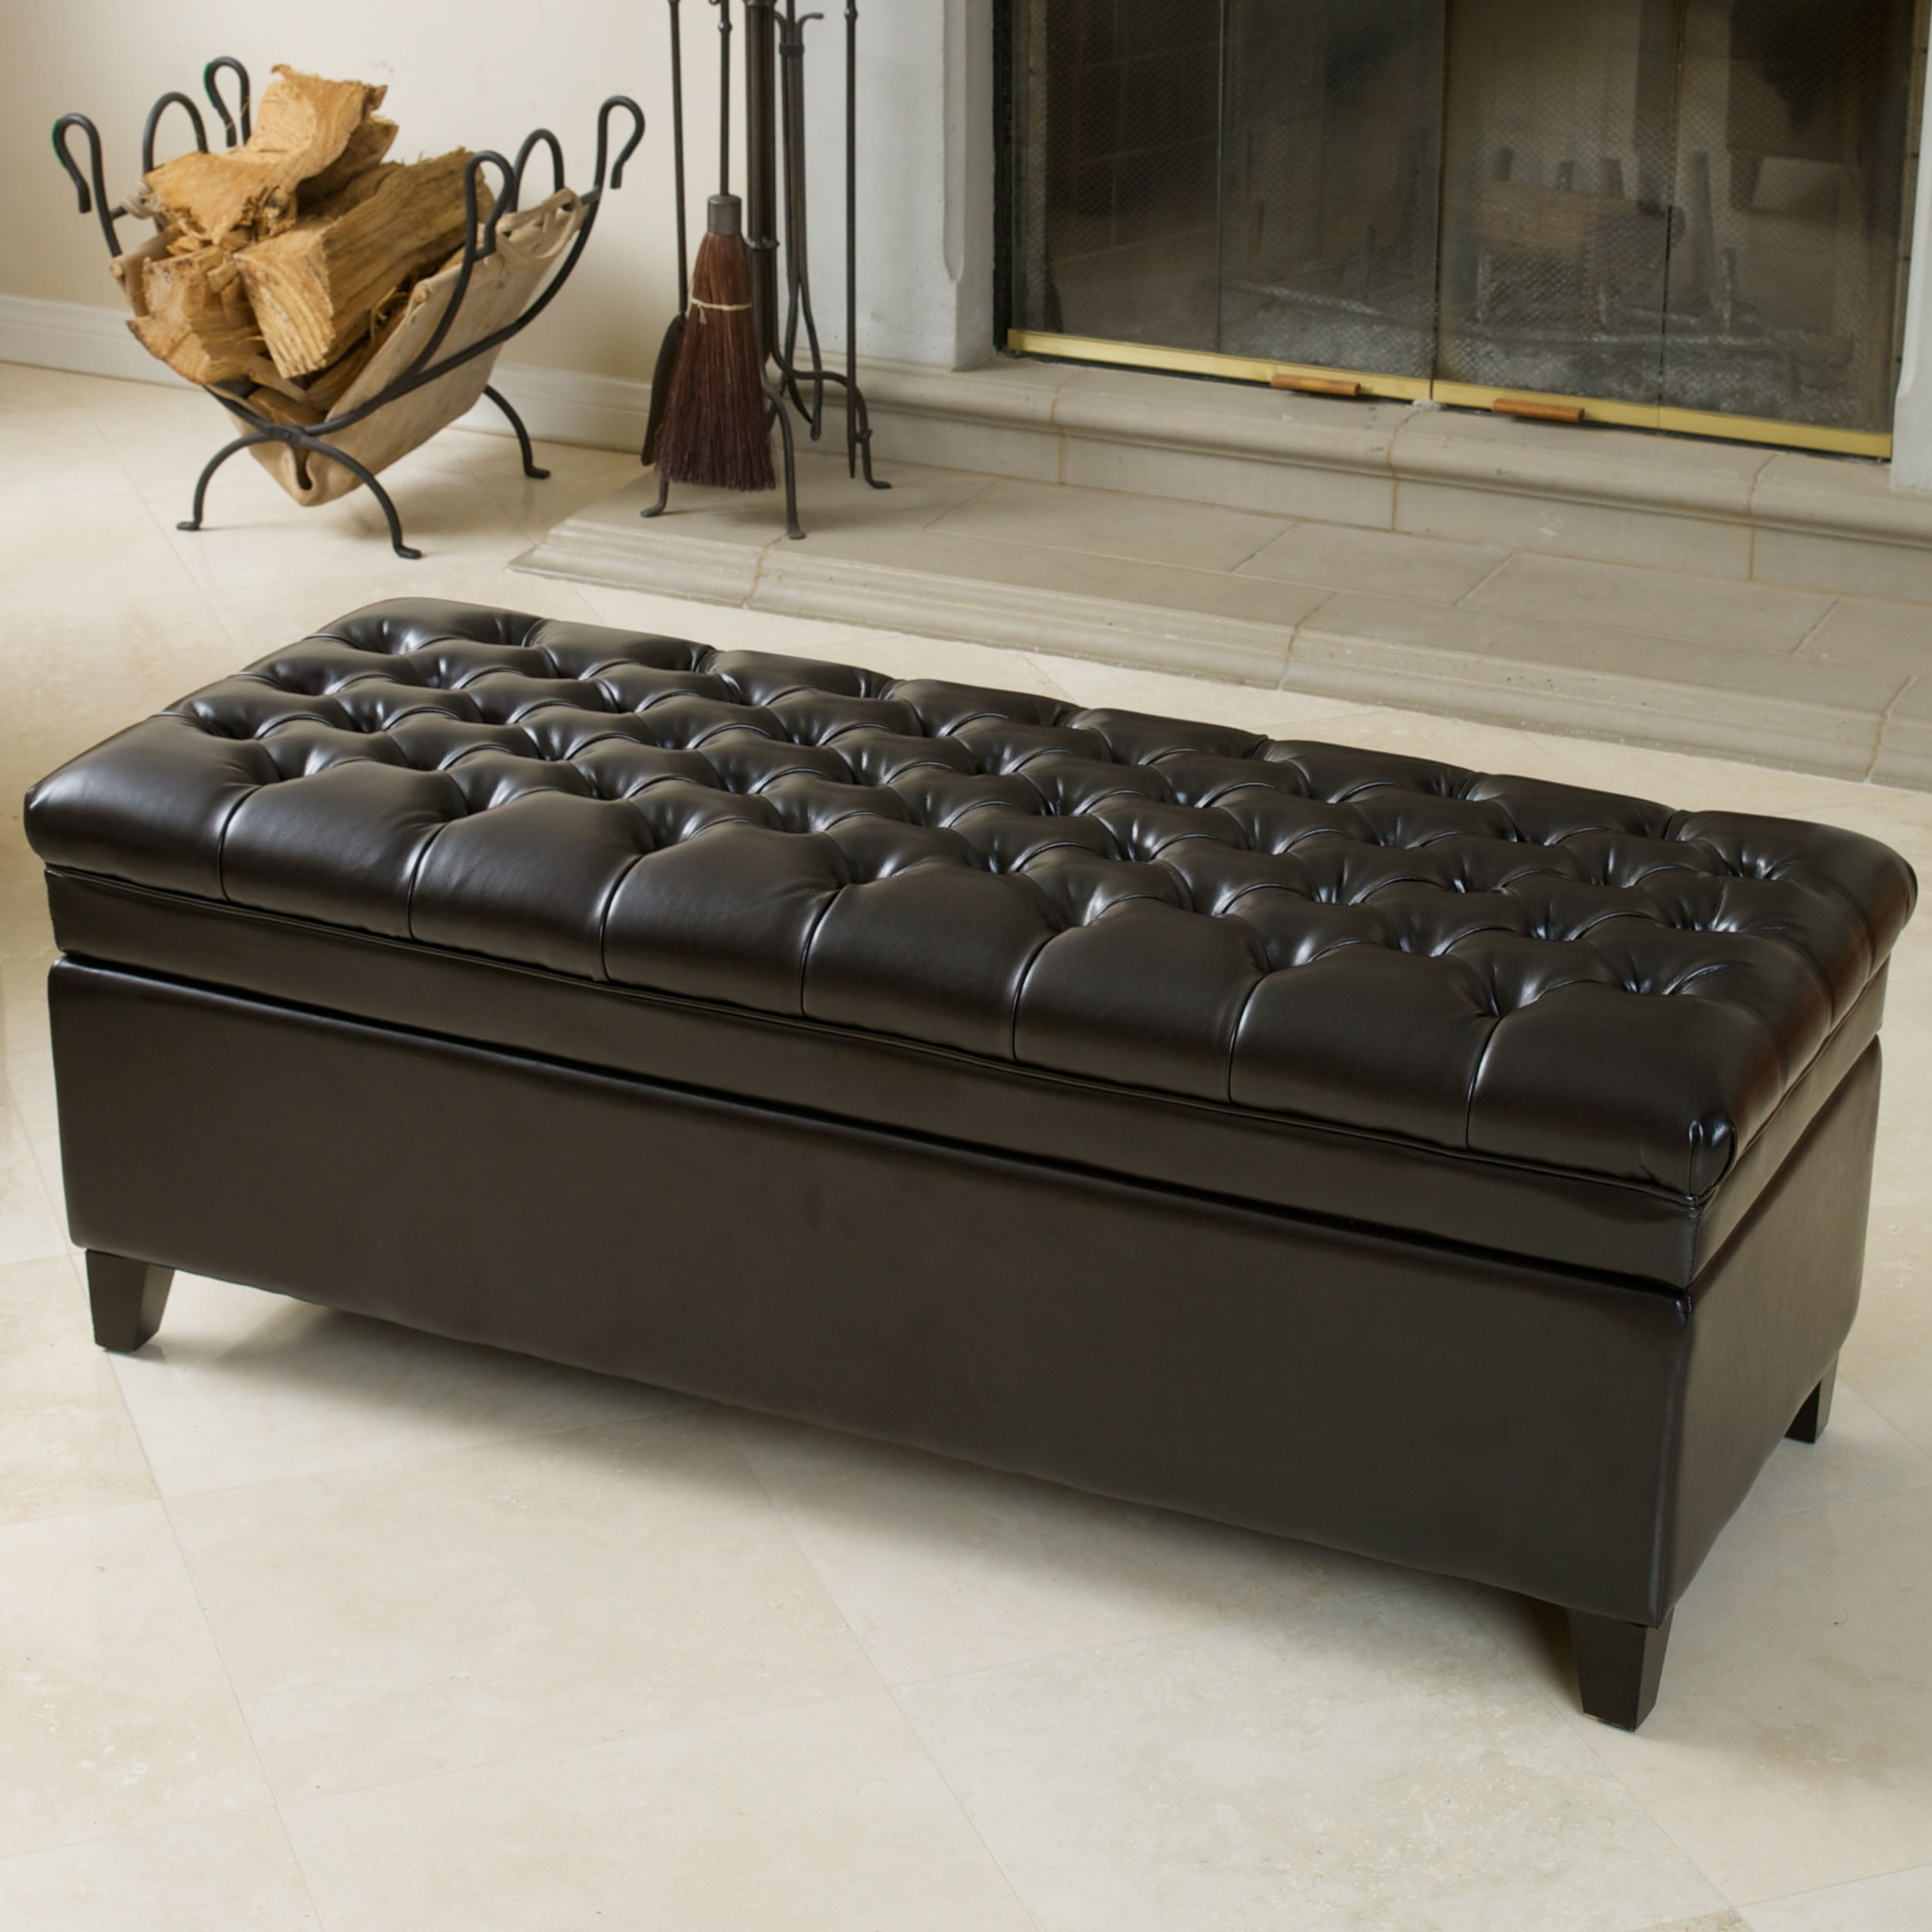 Bennette Tufted Espresso Brown Leather Storage Ottoman by GDF Studio